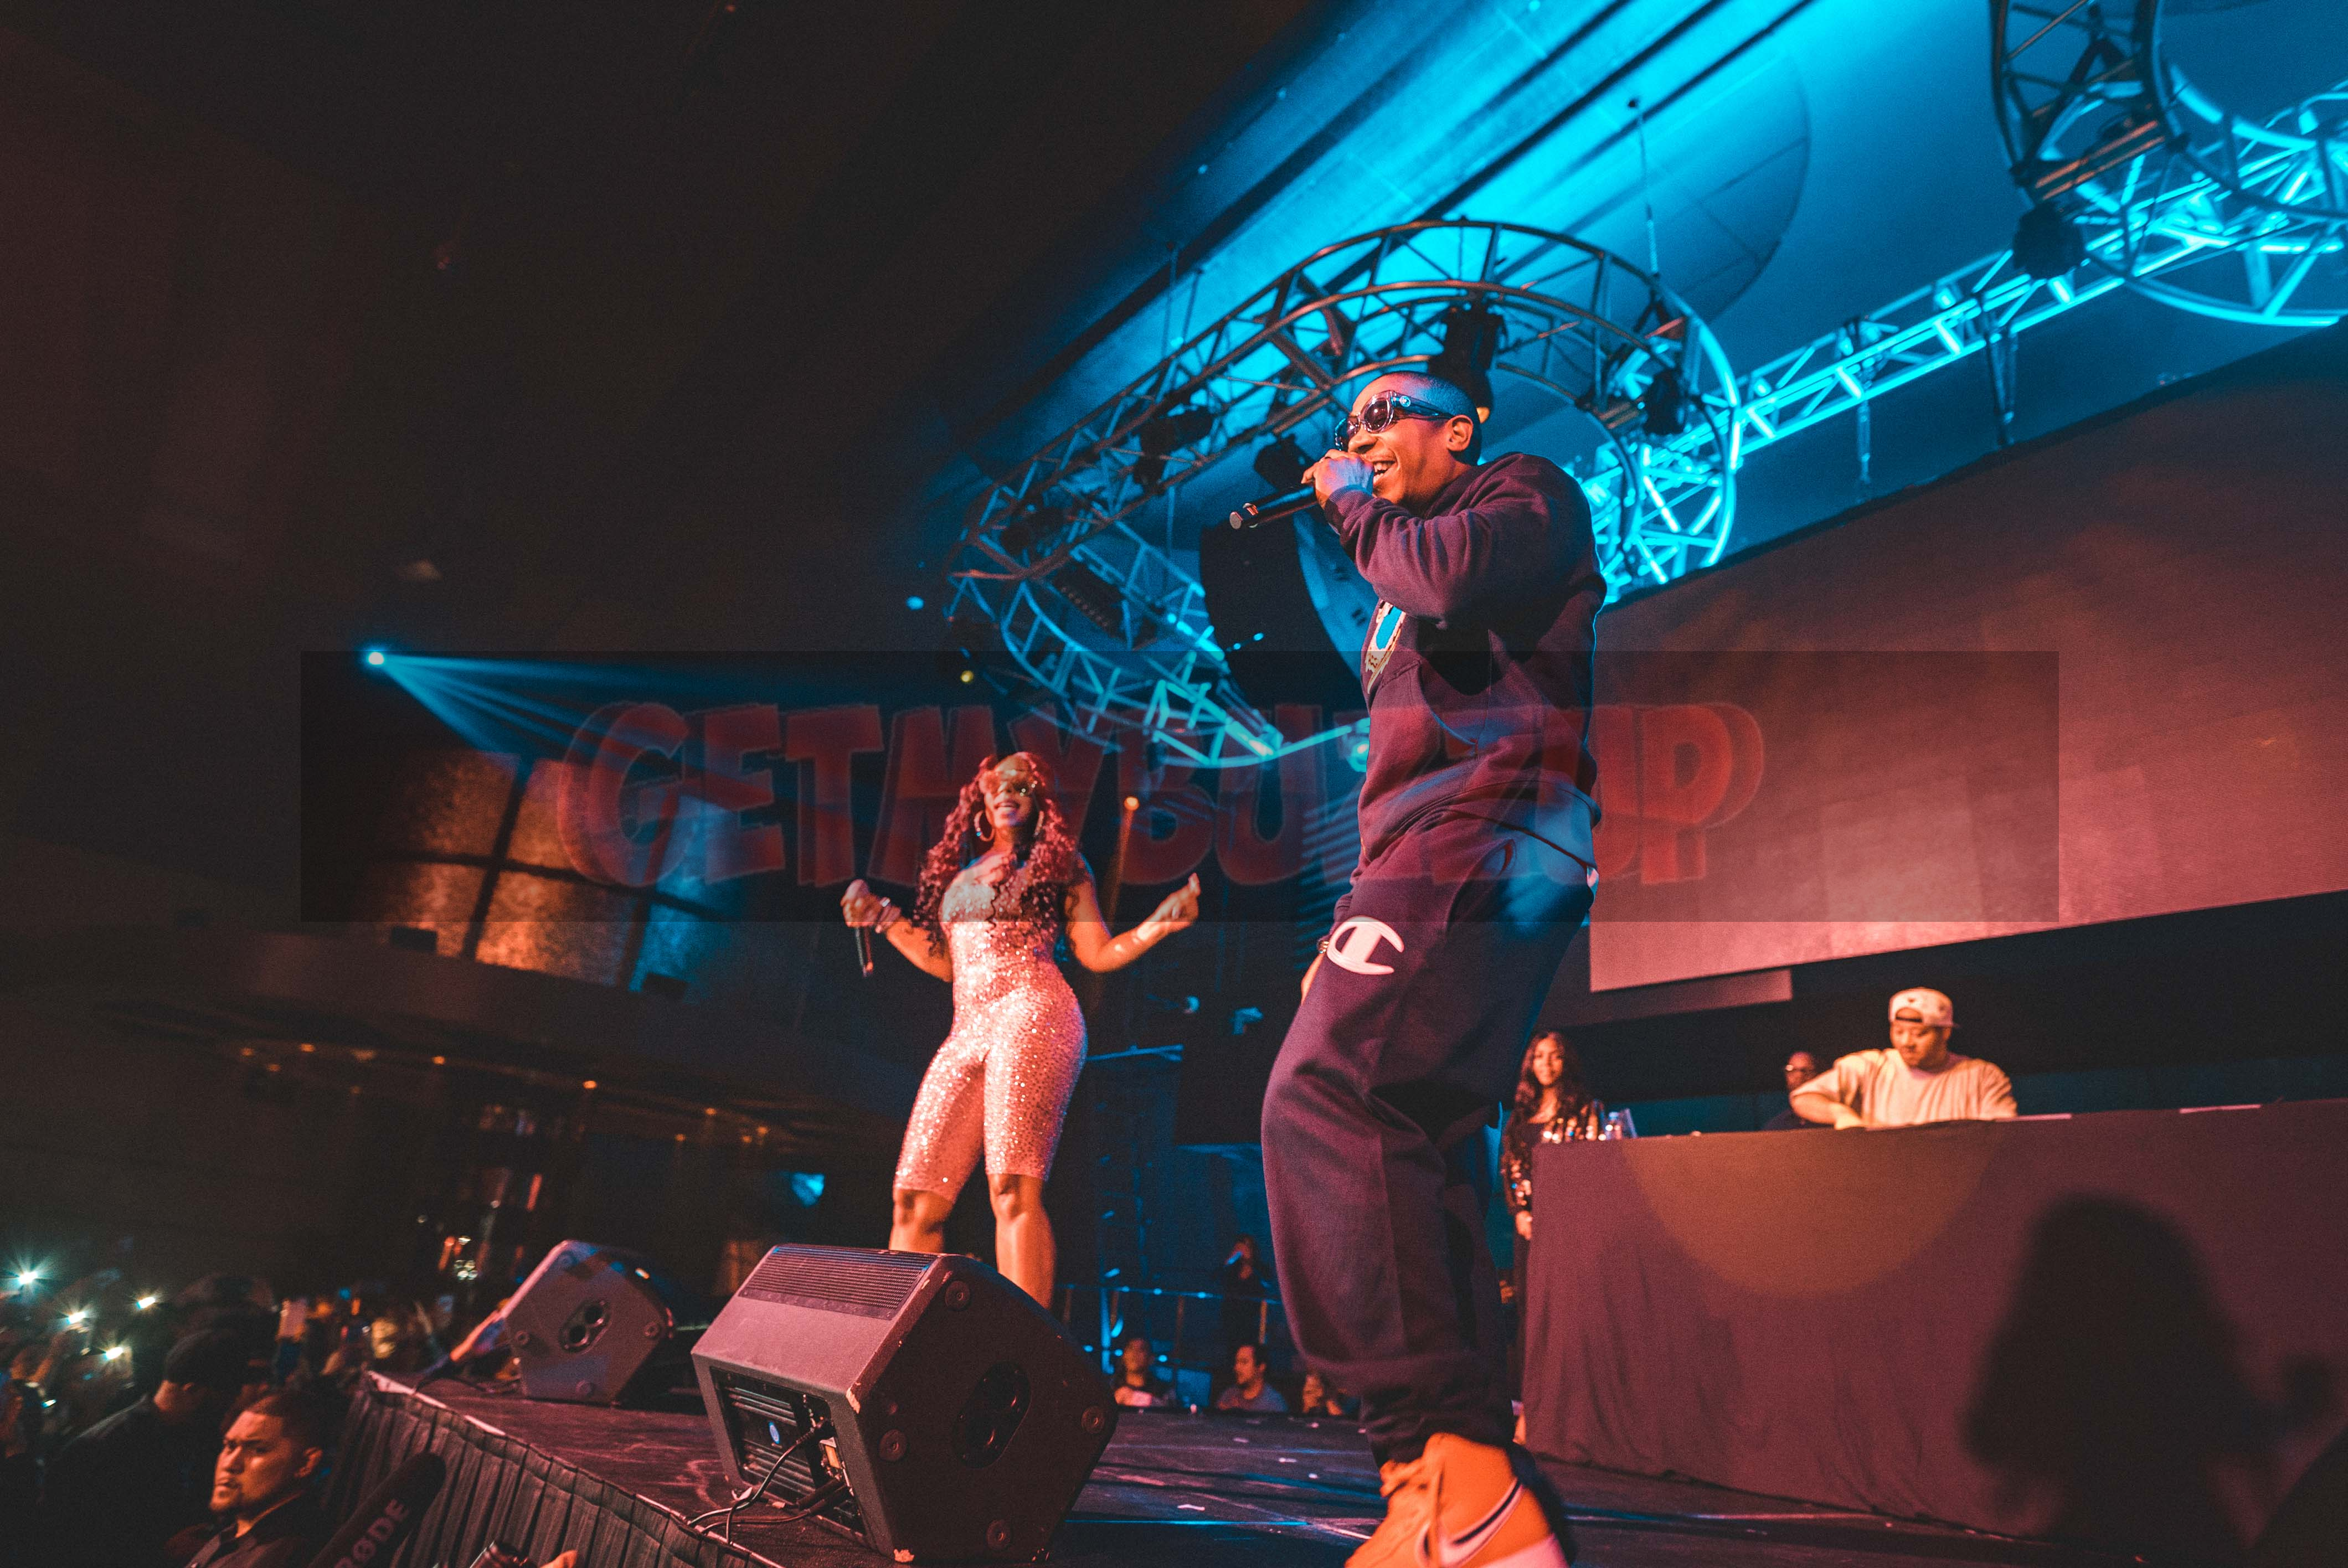 Event Recap: Ja Rule and Ashanti perform at LEX Nightclub [Photos]